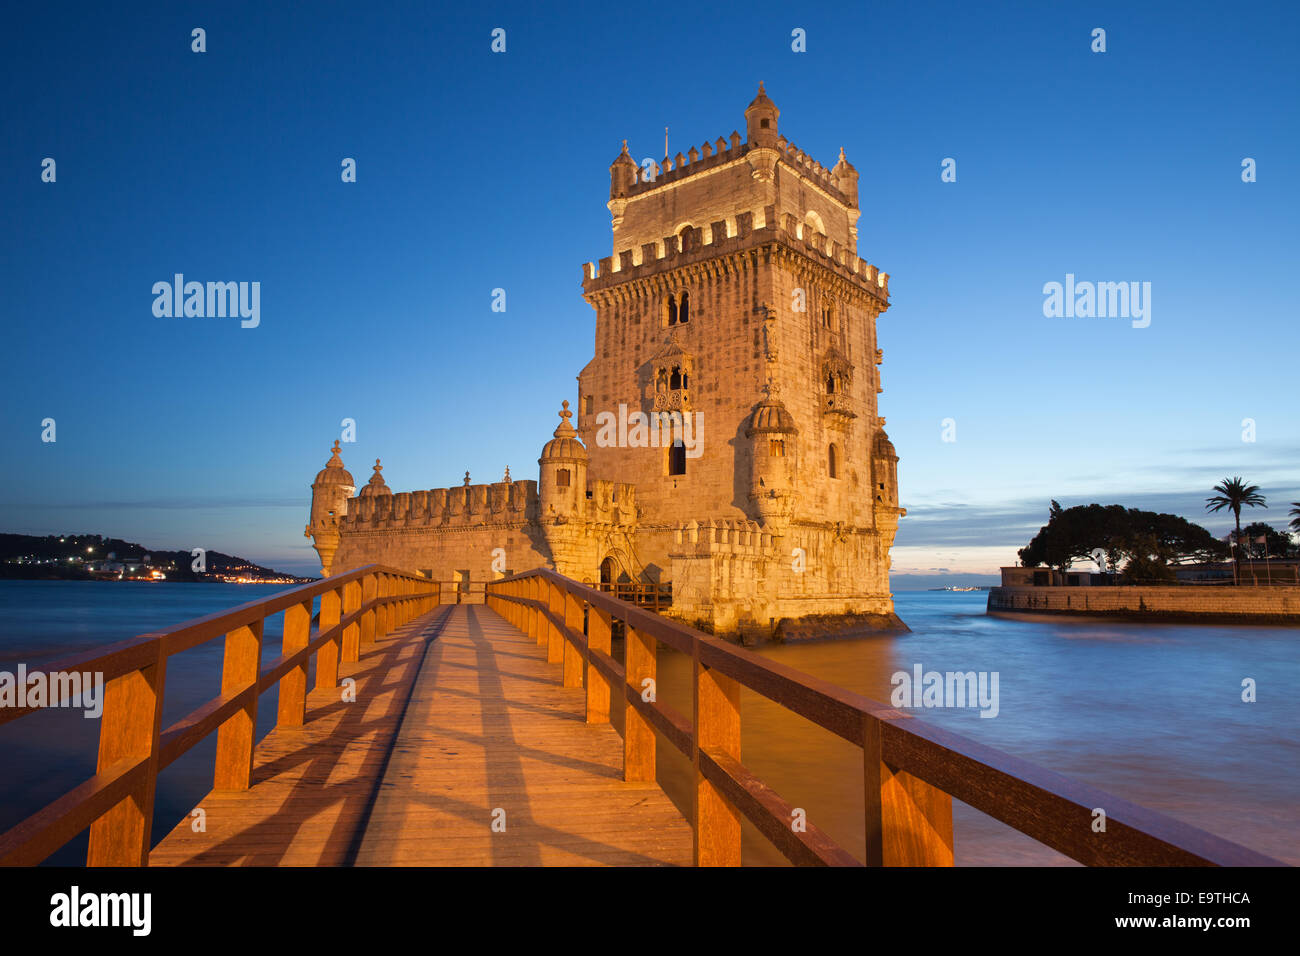 Belem Tower (Portuguese: Torre de Belem) on the Tagus river illuminated at night in Lisbon, Portugal. Stock Photo